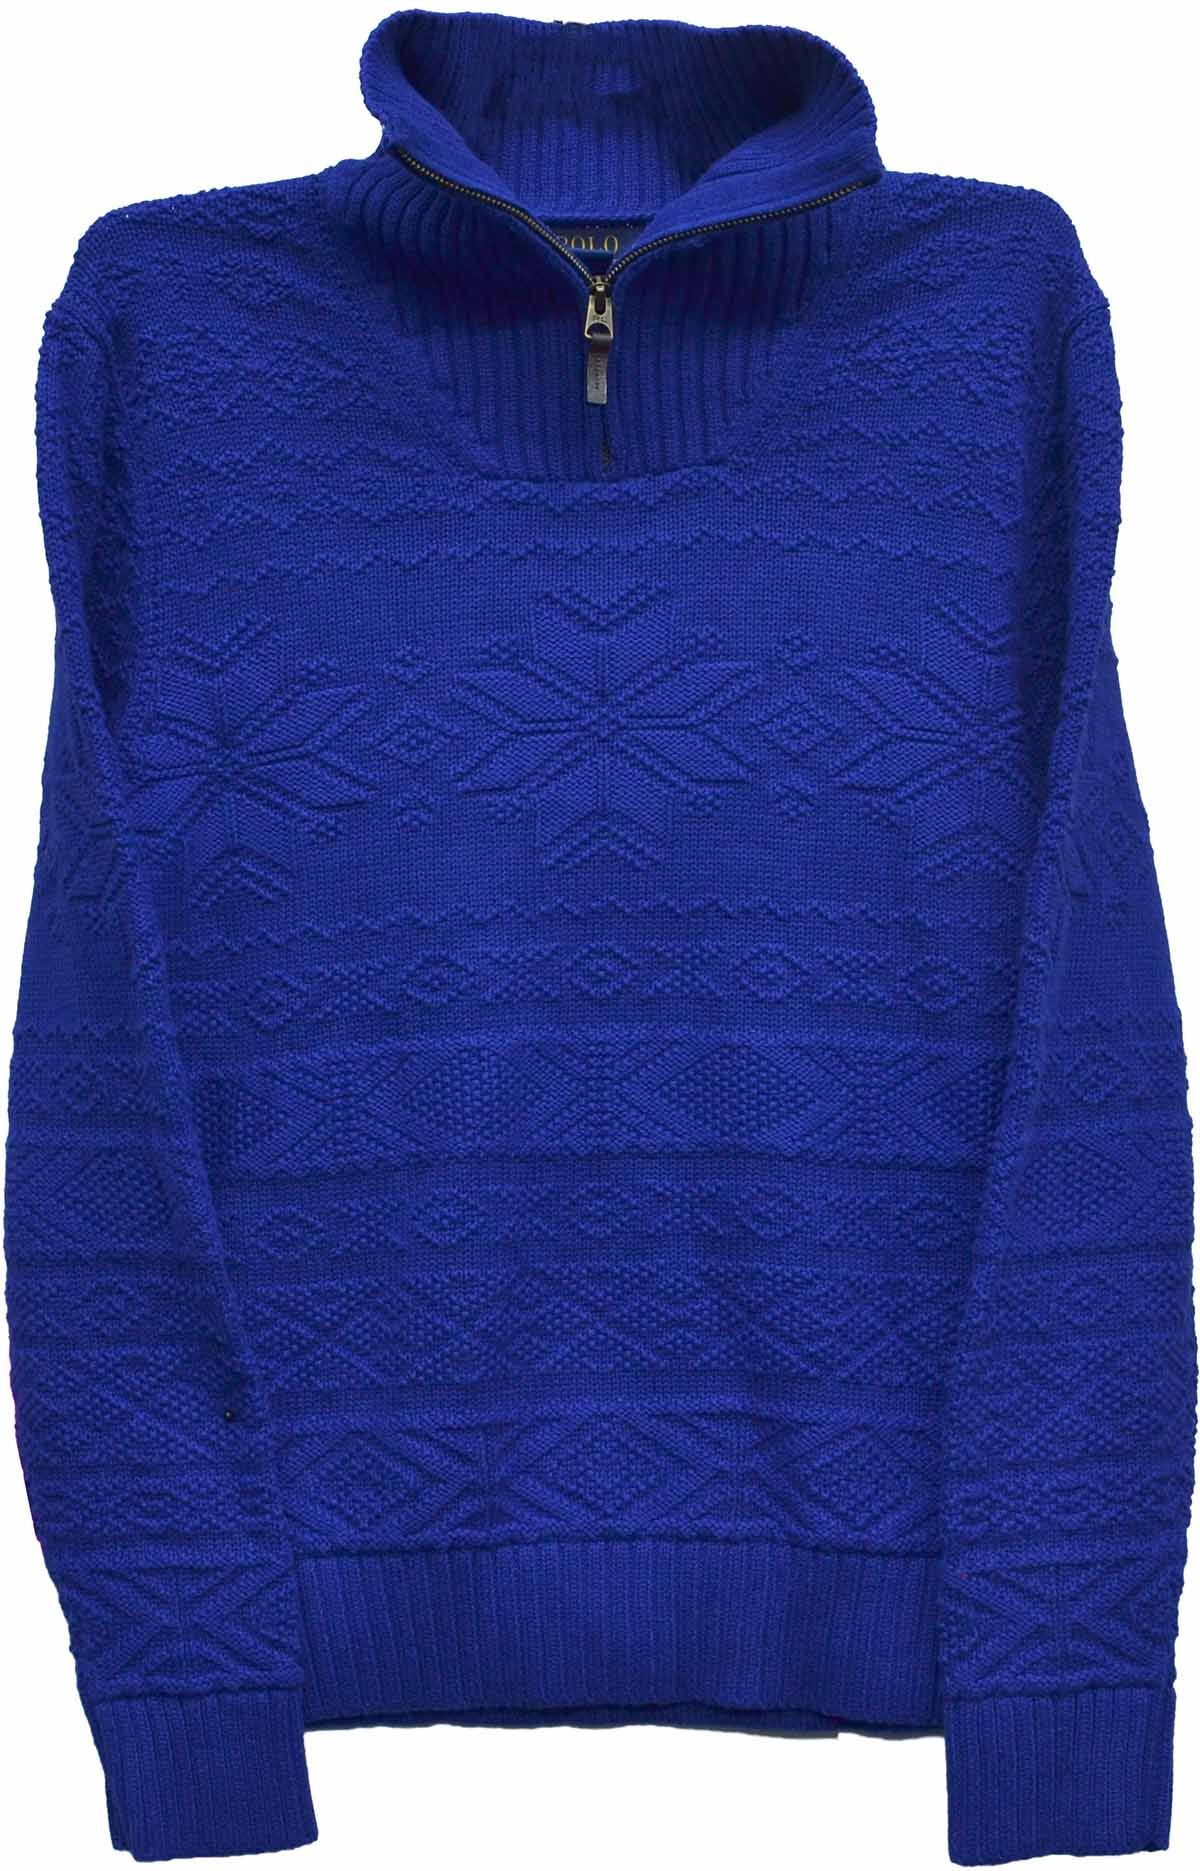 Polo Ralph Lauren Boy's Holiday Sweater Heritage Blue X-Large (18-20)